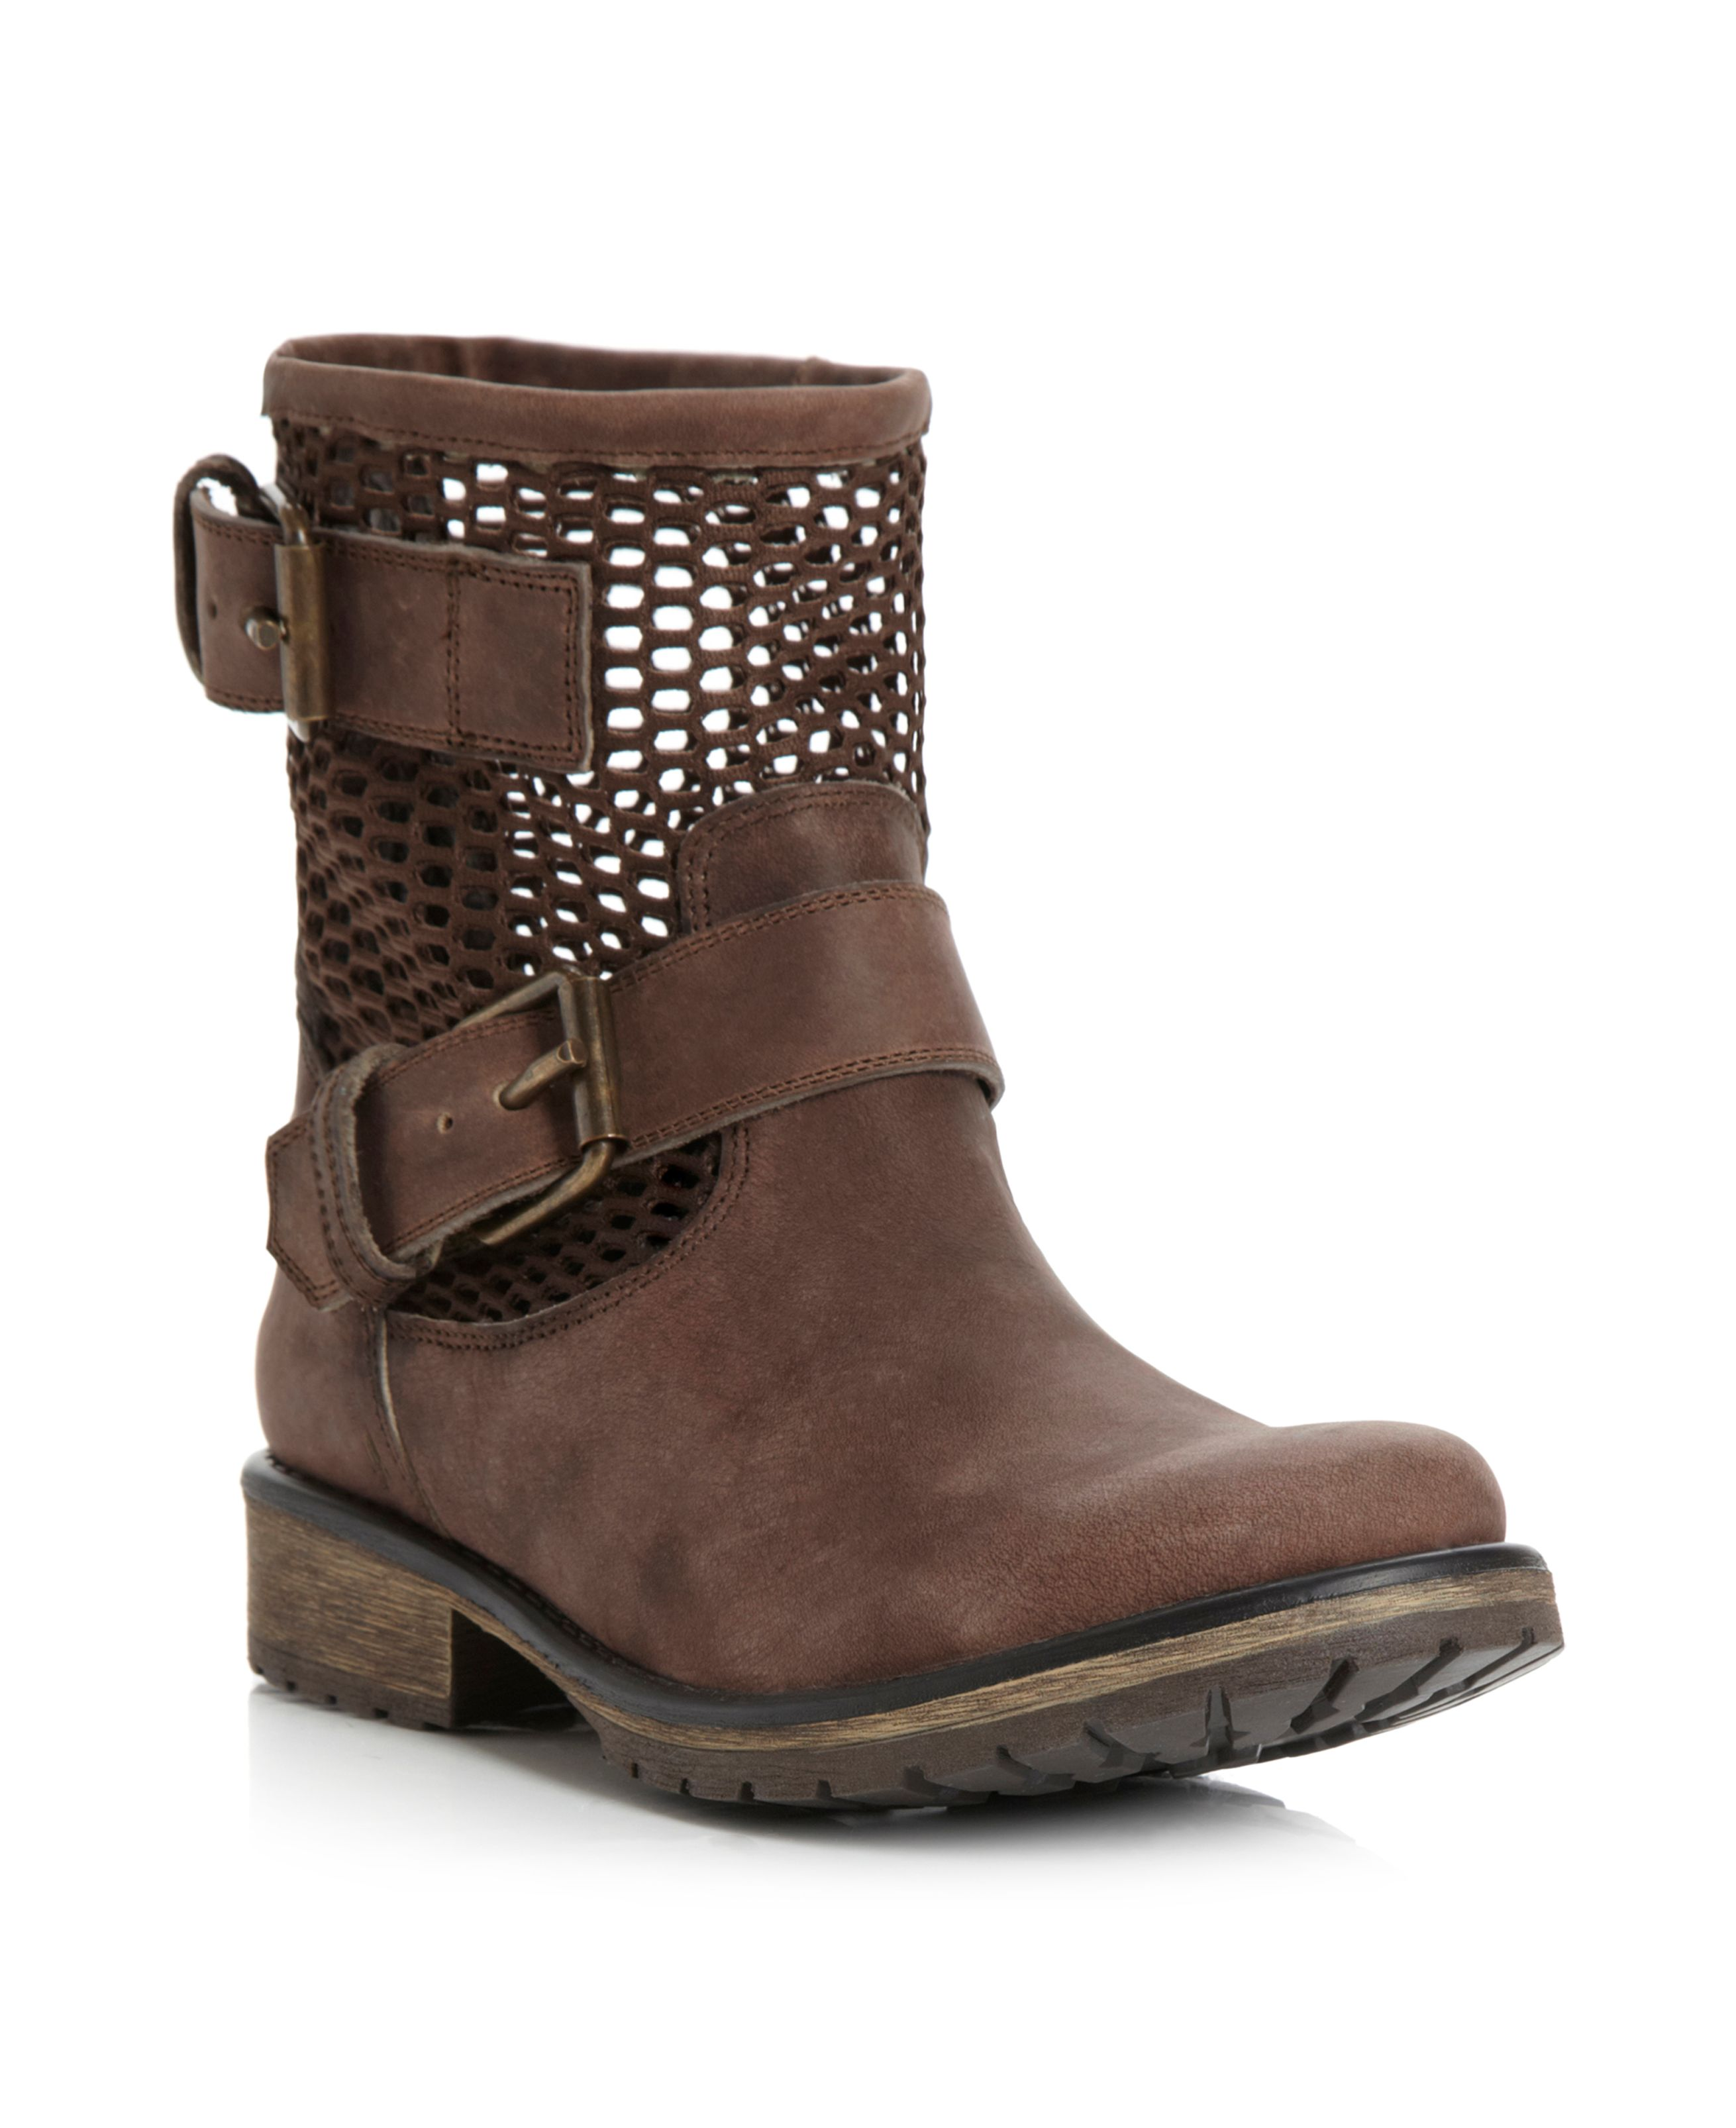 Flank cut out biker boots